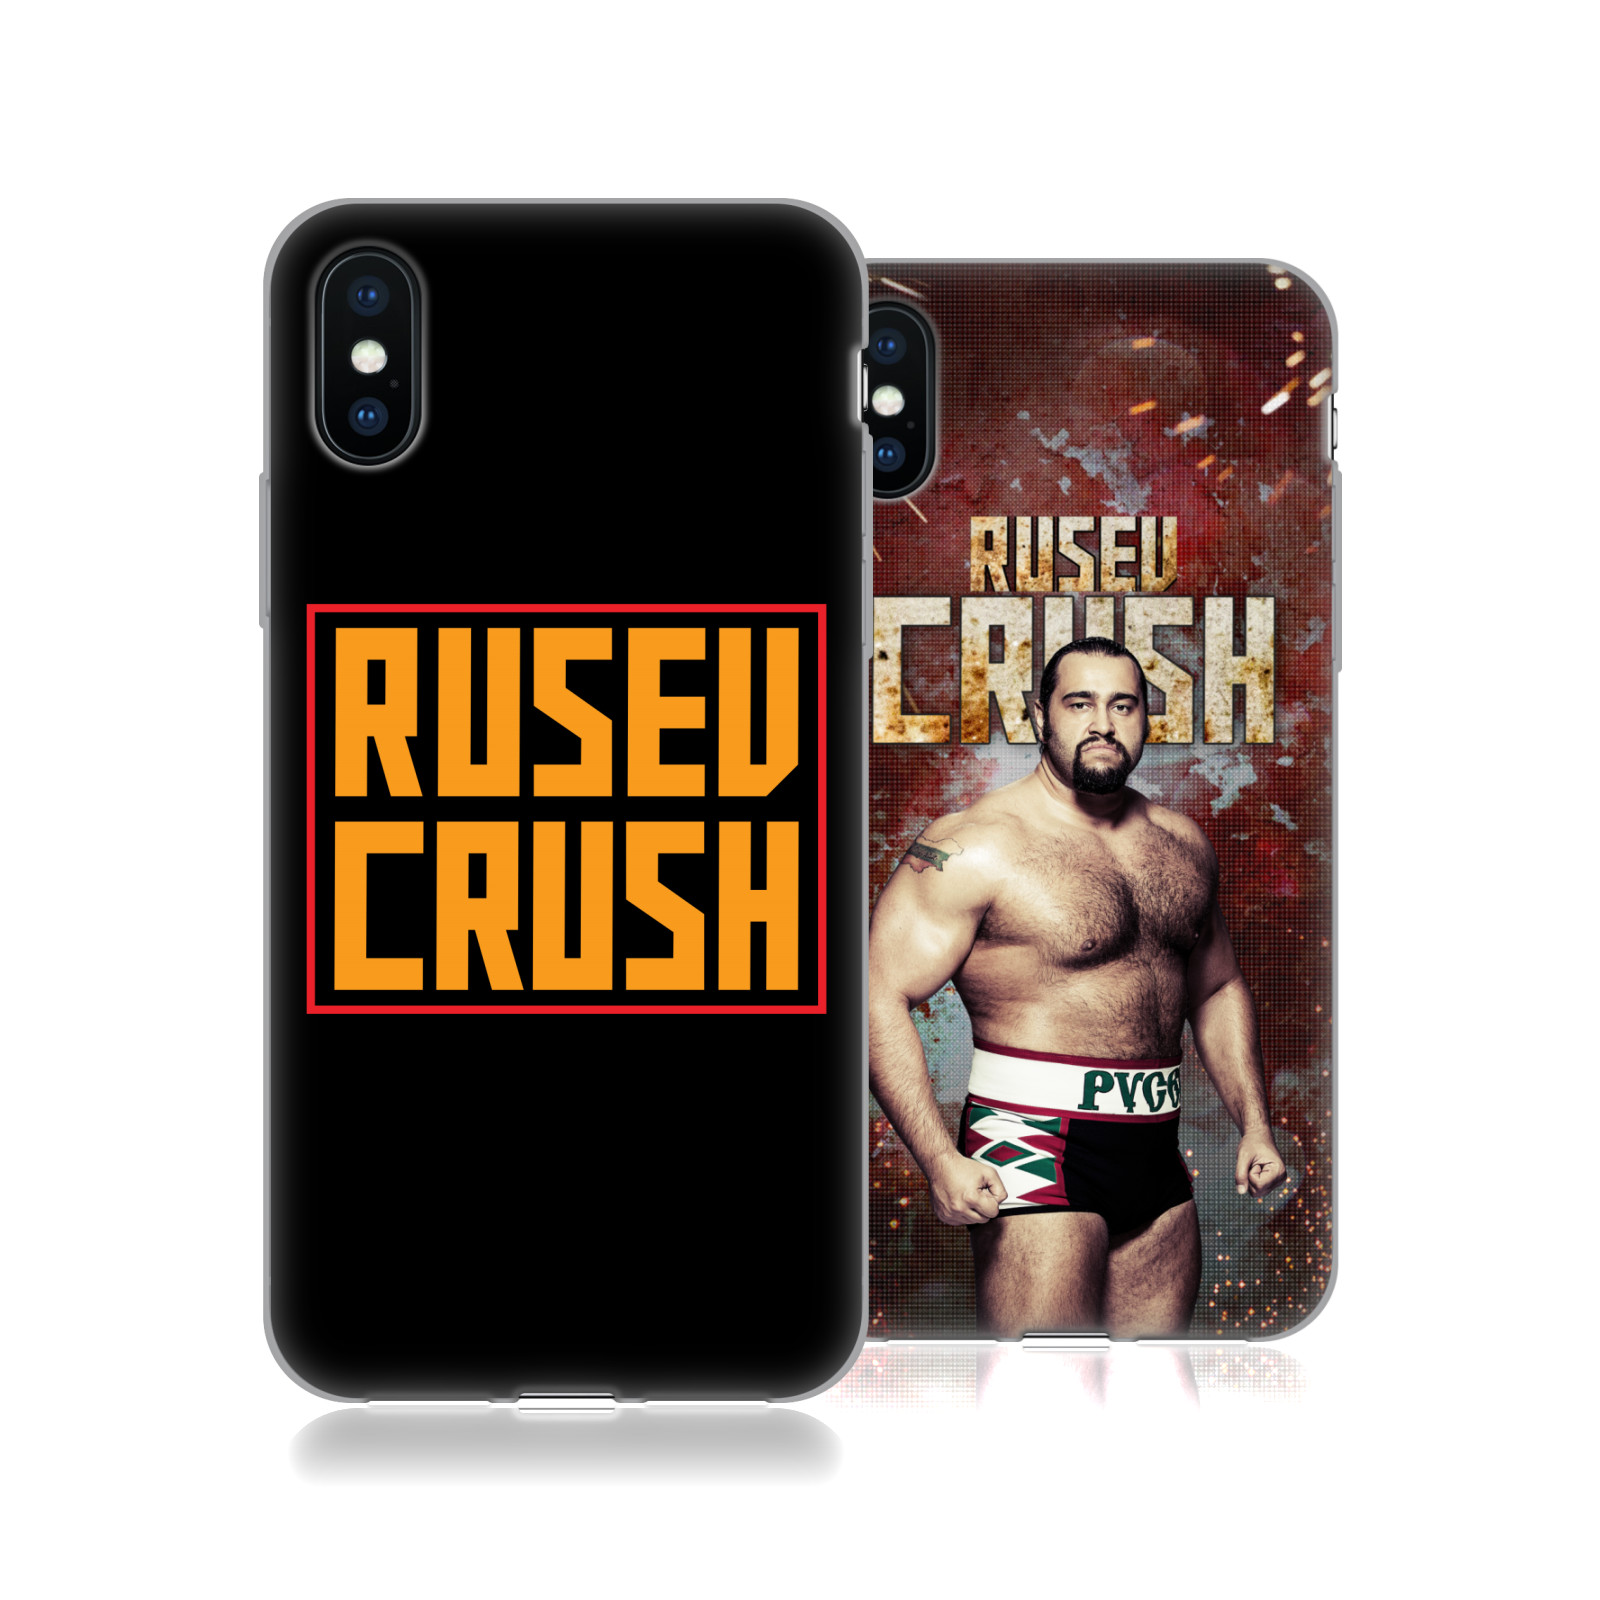 WWE <!--translate-lineup-->Rusev Crush<!--translate-lineup-->